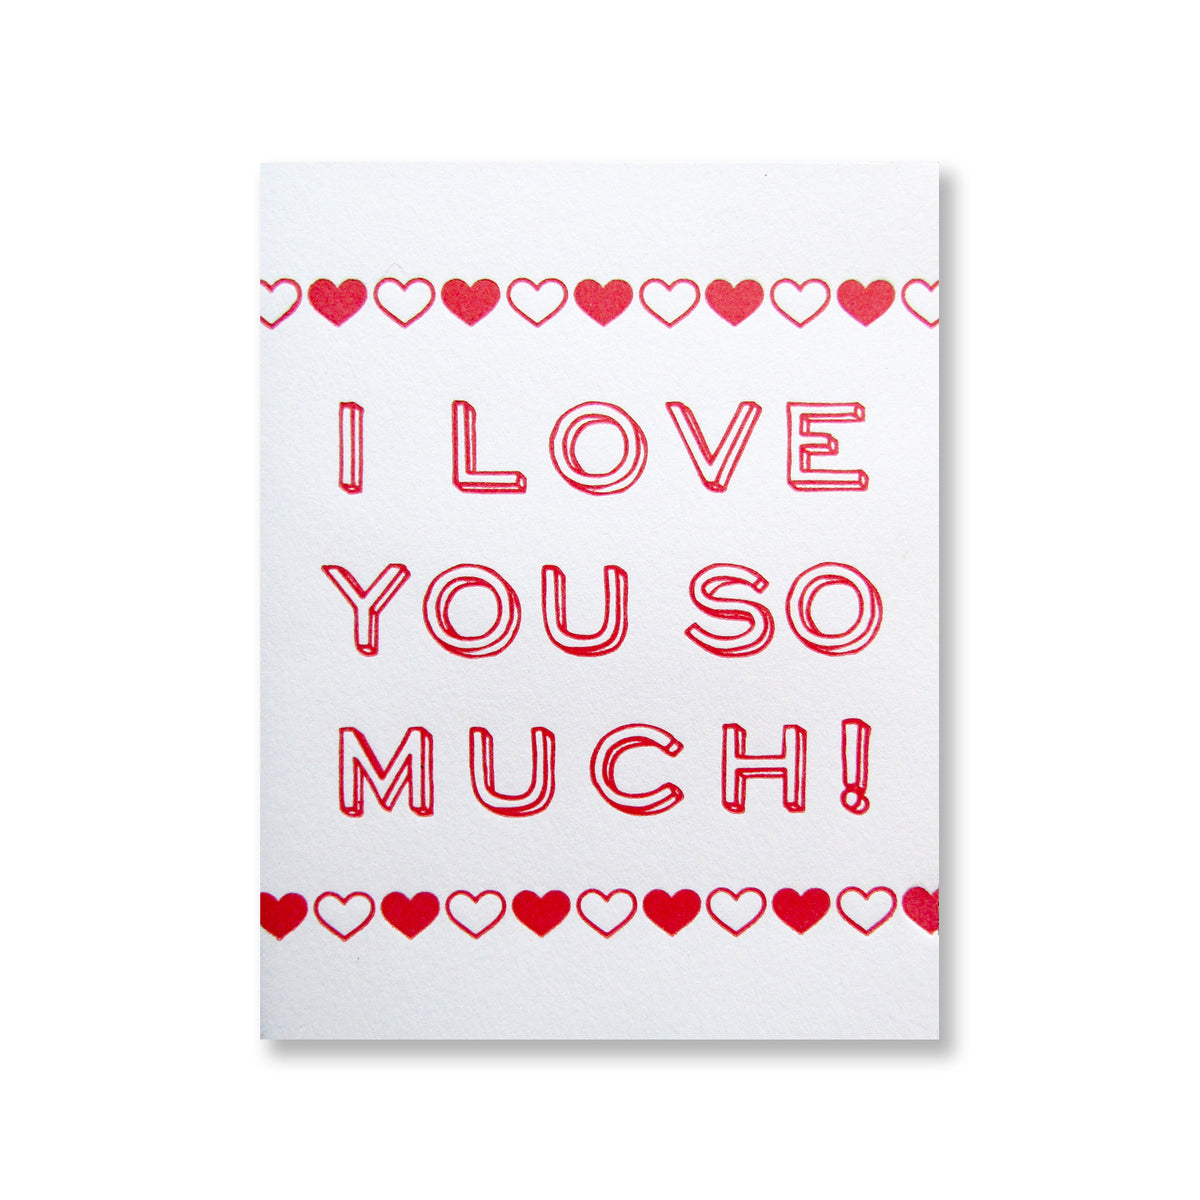 inviting letterpress i love you so much card inviting